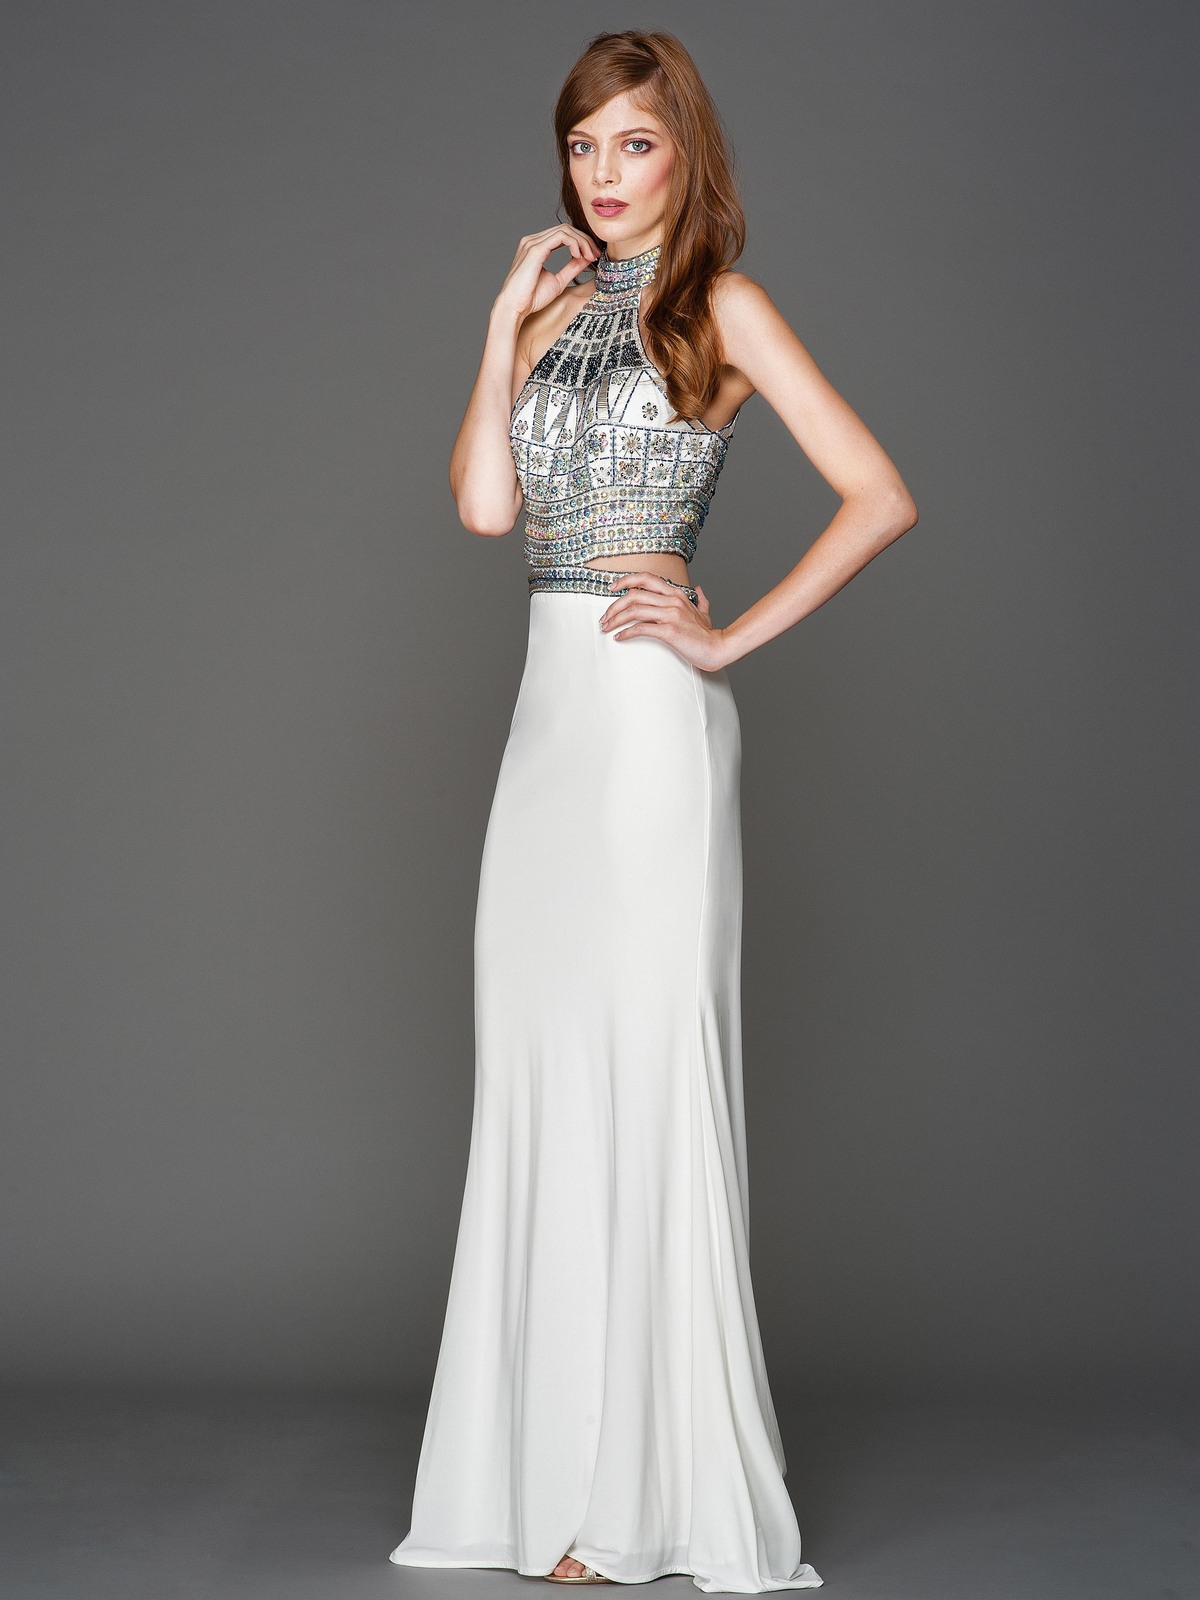 Jeweled Evening Gowns